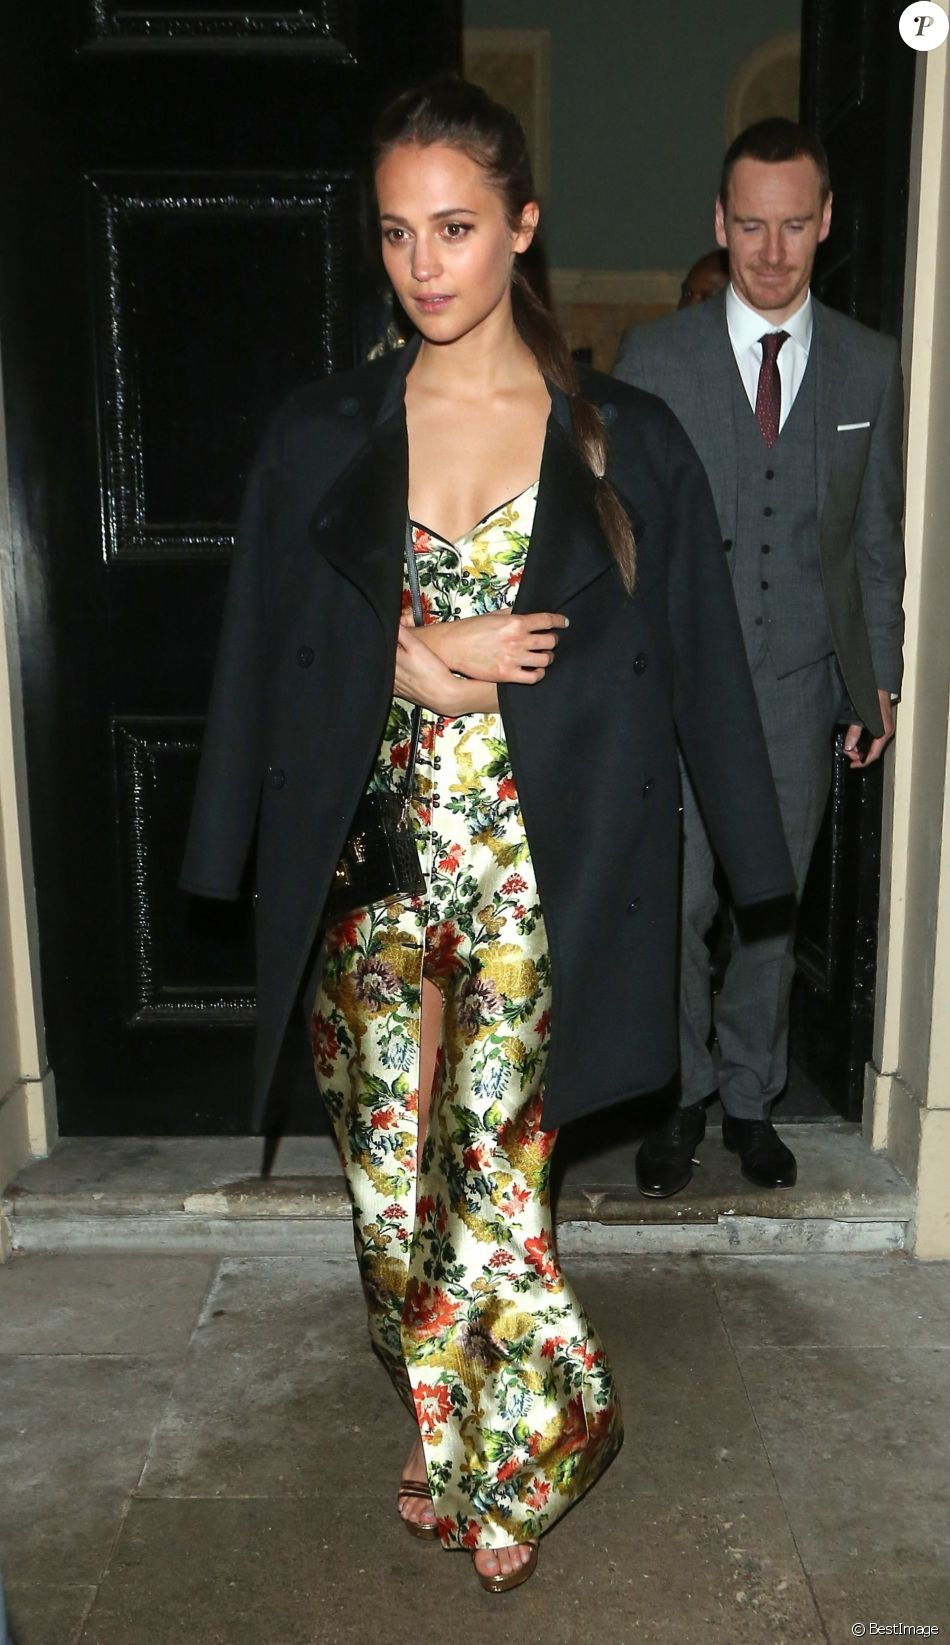 "Alicia Vikander et Michael Fassbender à la sortie de l'after-party du film ""Tomb Raider"" au club Home House à Londres, le 6 mars 2018"